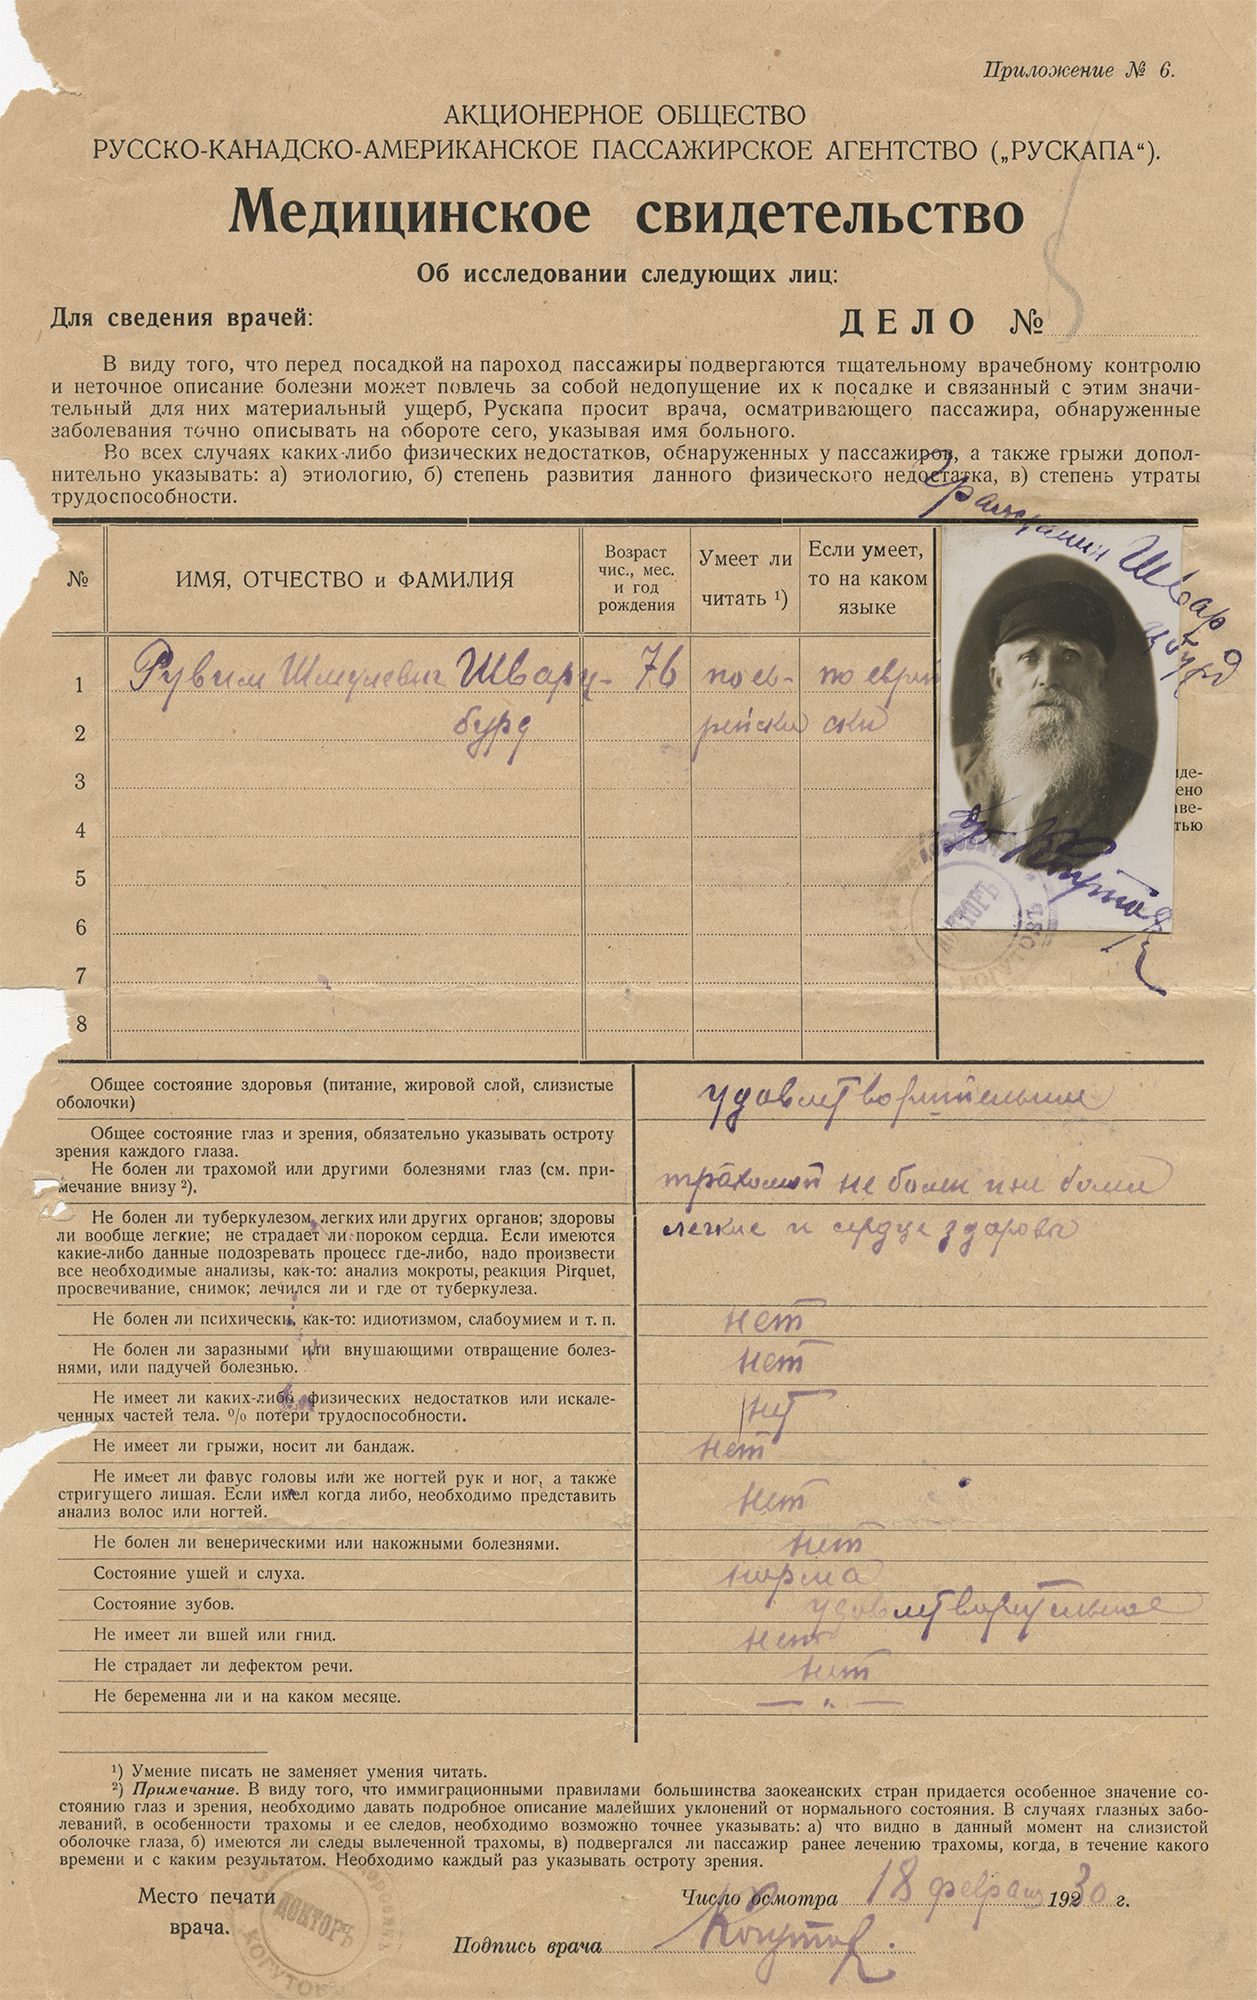 Medical Certificate for passenger Ruvim Schwartz, travelling to Canada. 1930